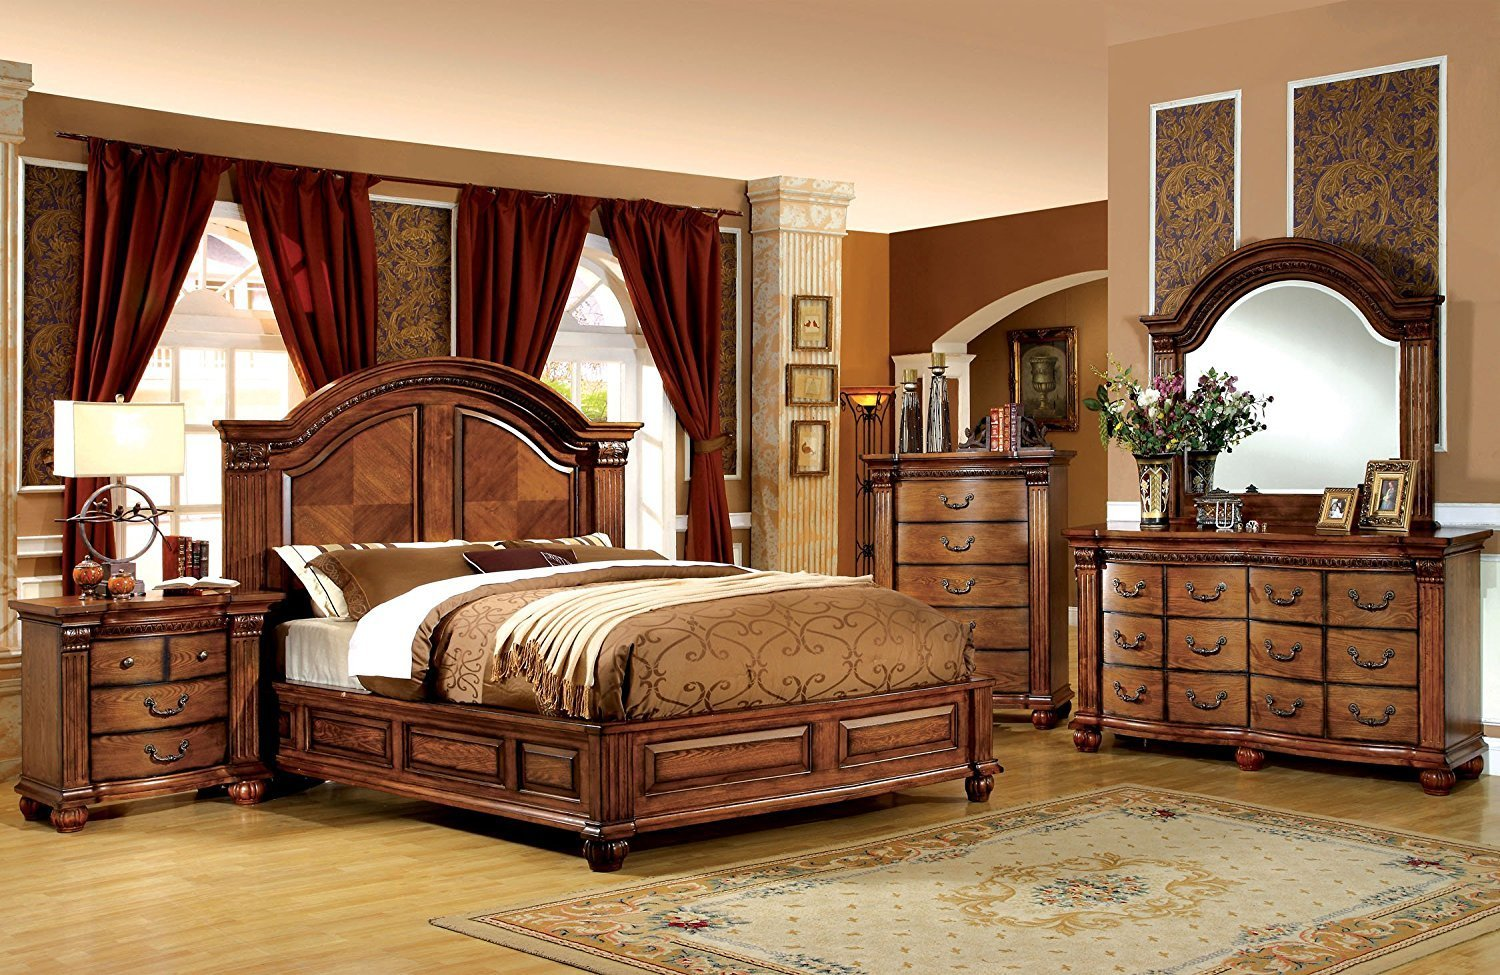 Best Oak Bedroom Sets King Bed Sizes Shop Factory Direct With Pictures